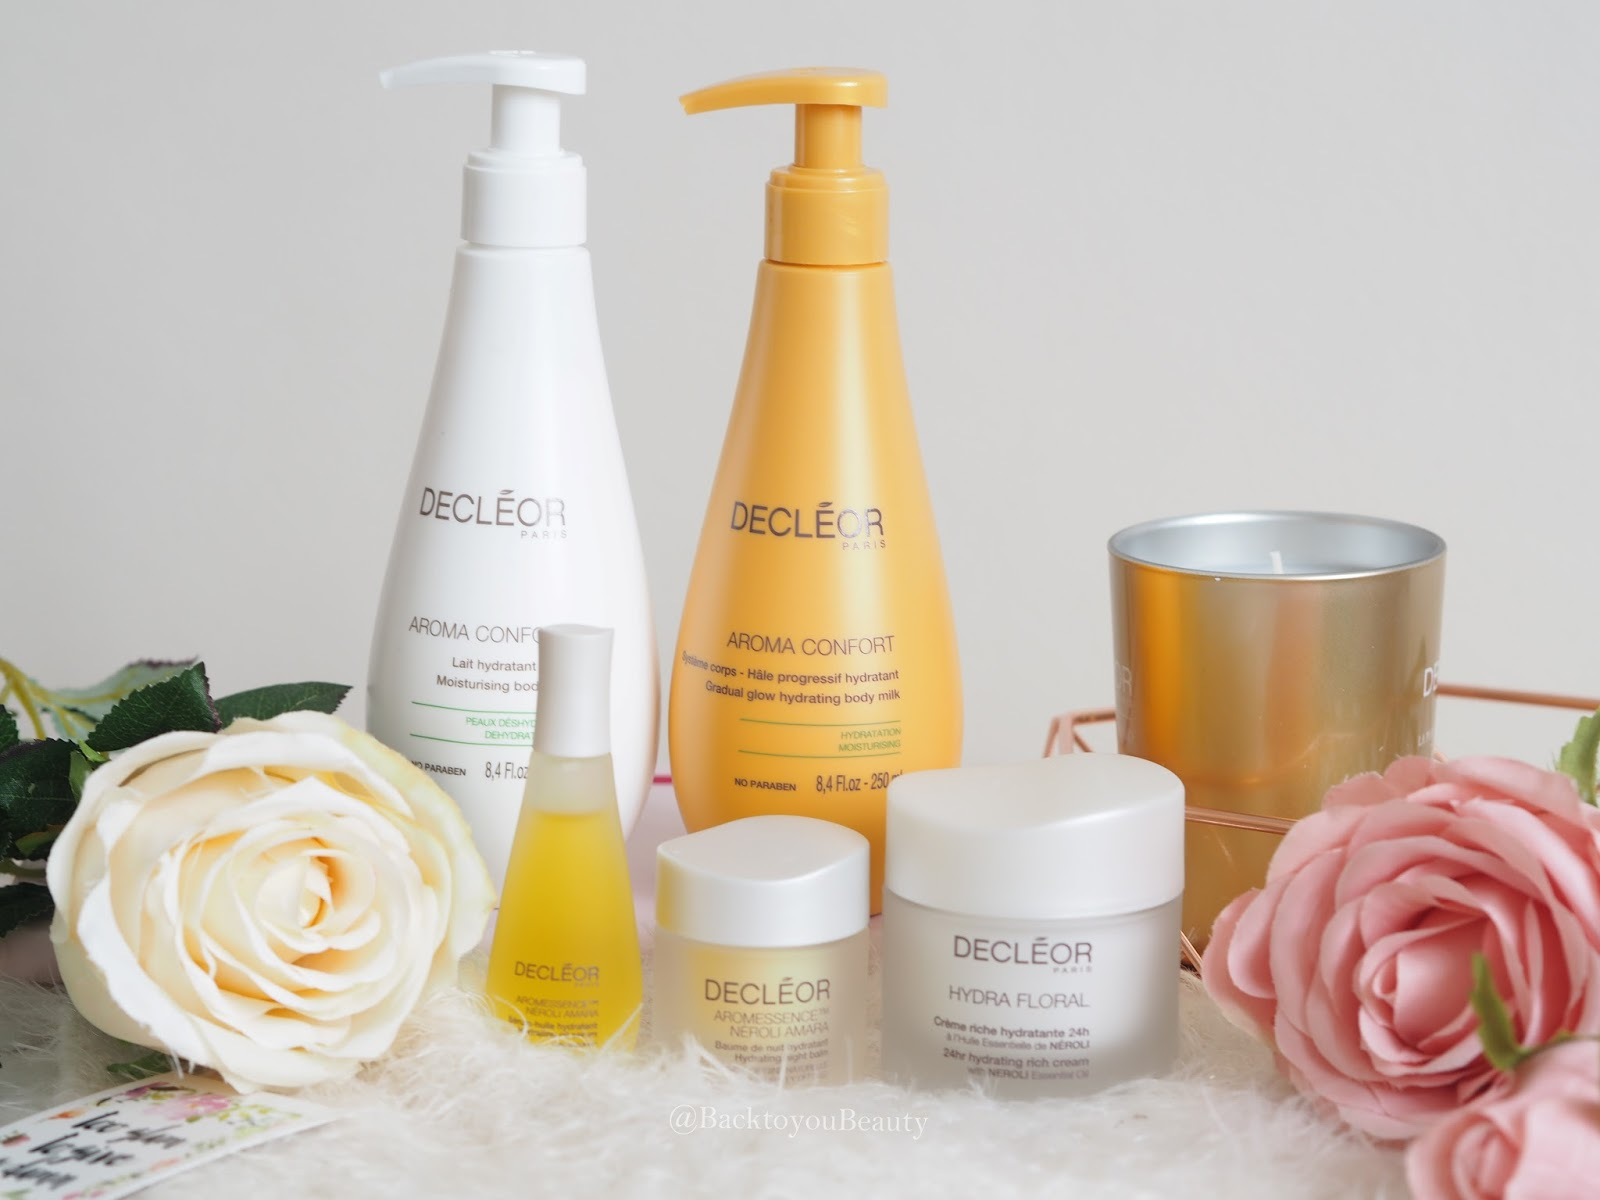 Decleor Spring Skin & Glow Collection - QVCUK March TSV